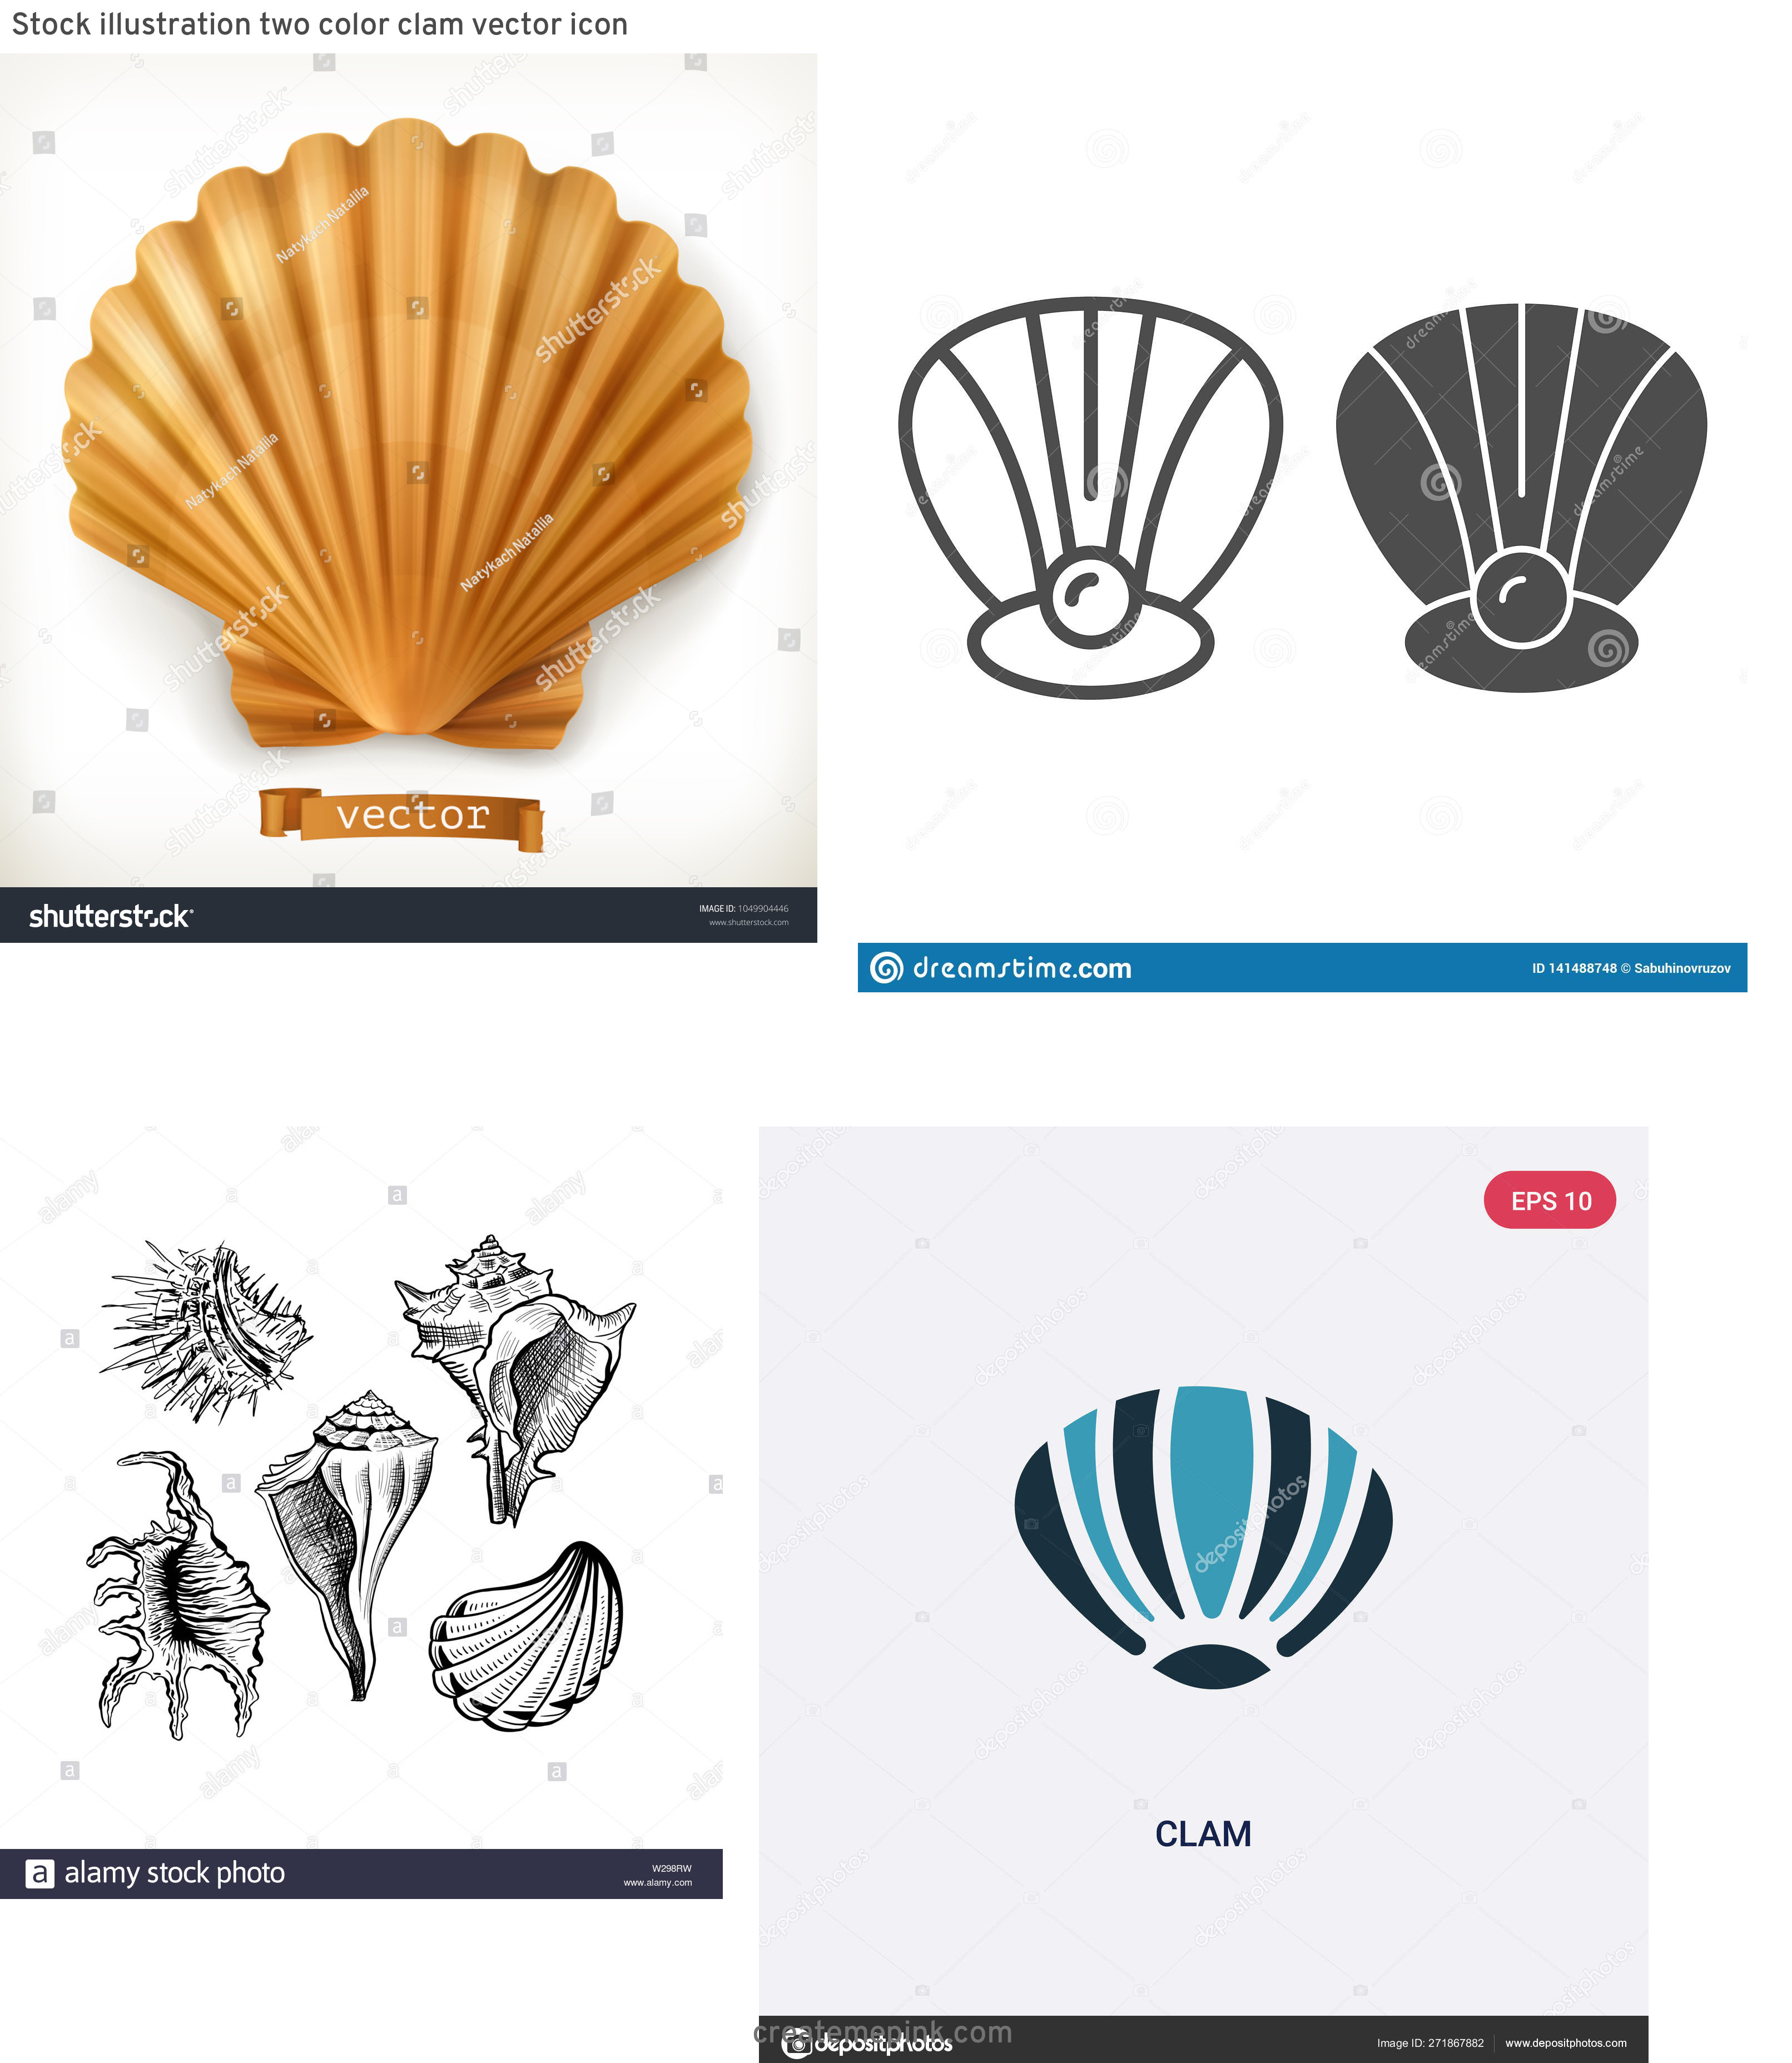 Clam Vector: Stock Illustration Two Color Clam Vector Icon